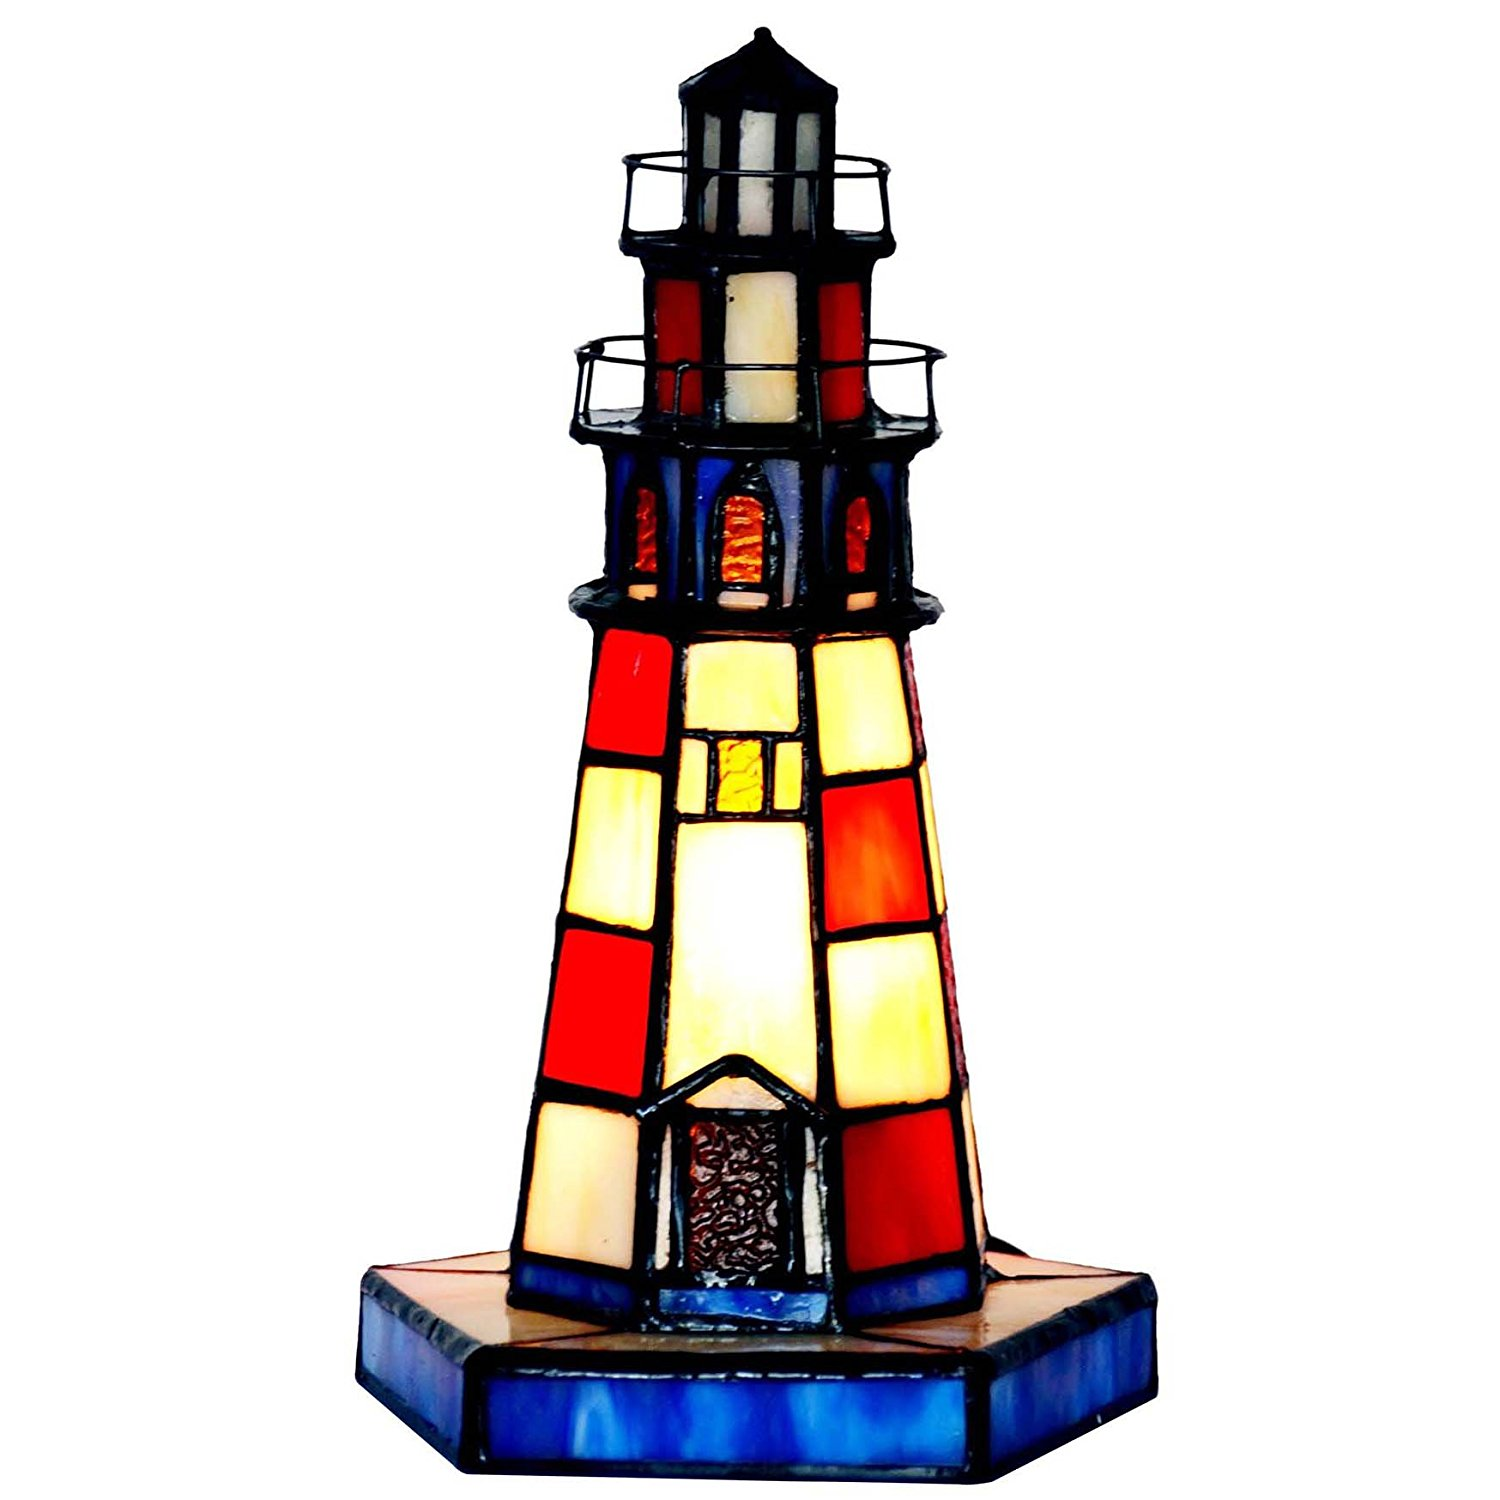 bieye inches lighthouse tiffany style stained glass accent table lamps lamp coffee kijiji mid century modern round dining nautical ture frames gold cherry end tables queen anne